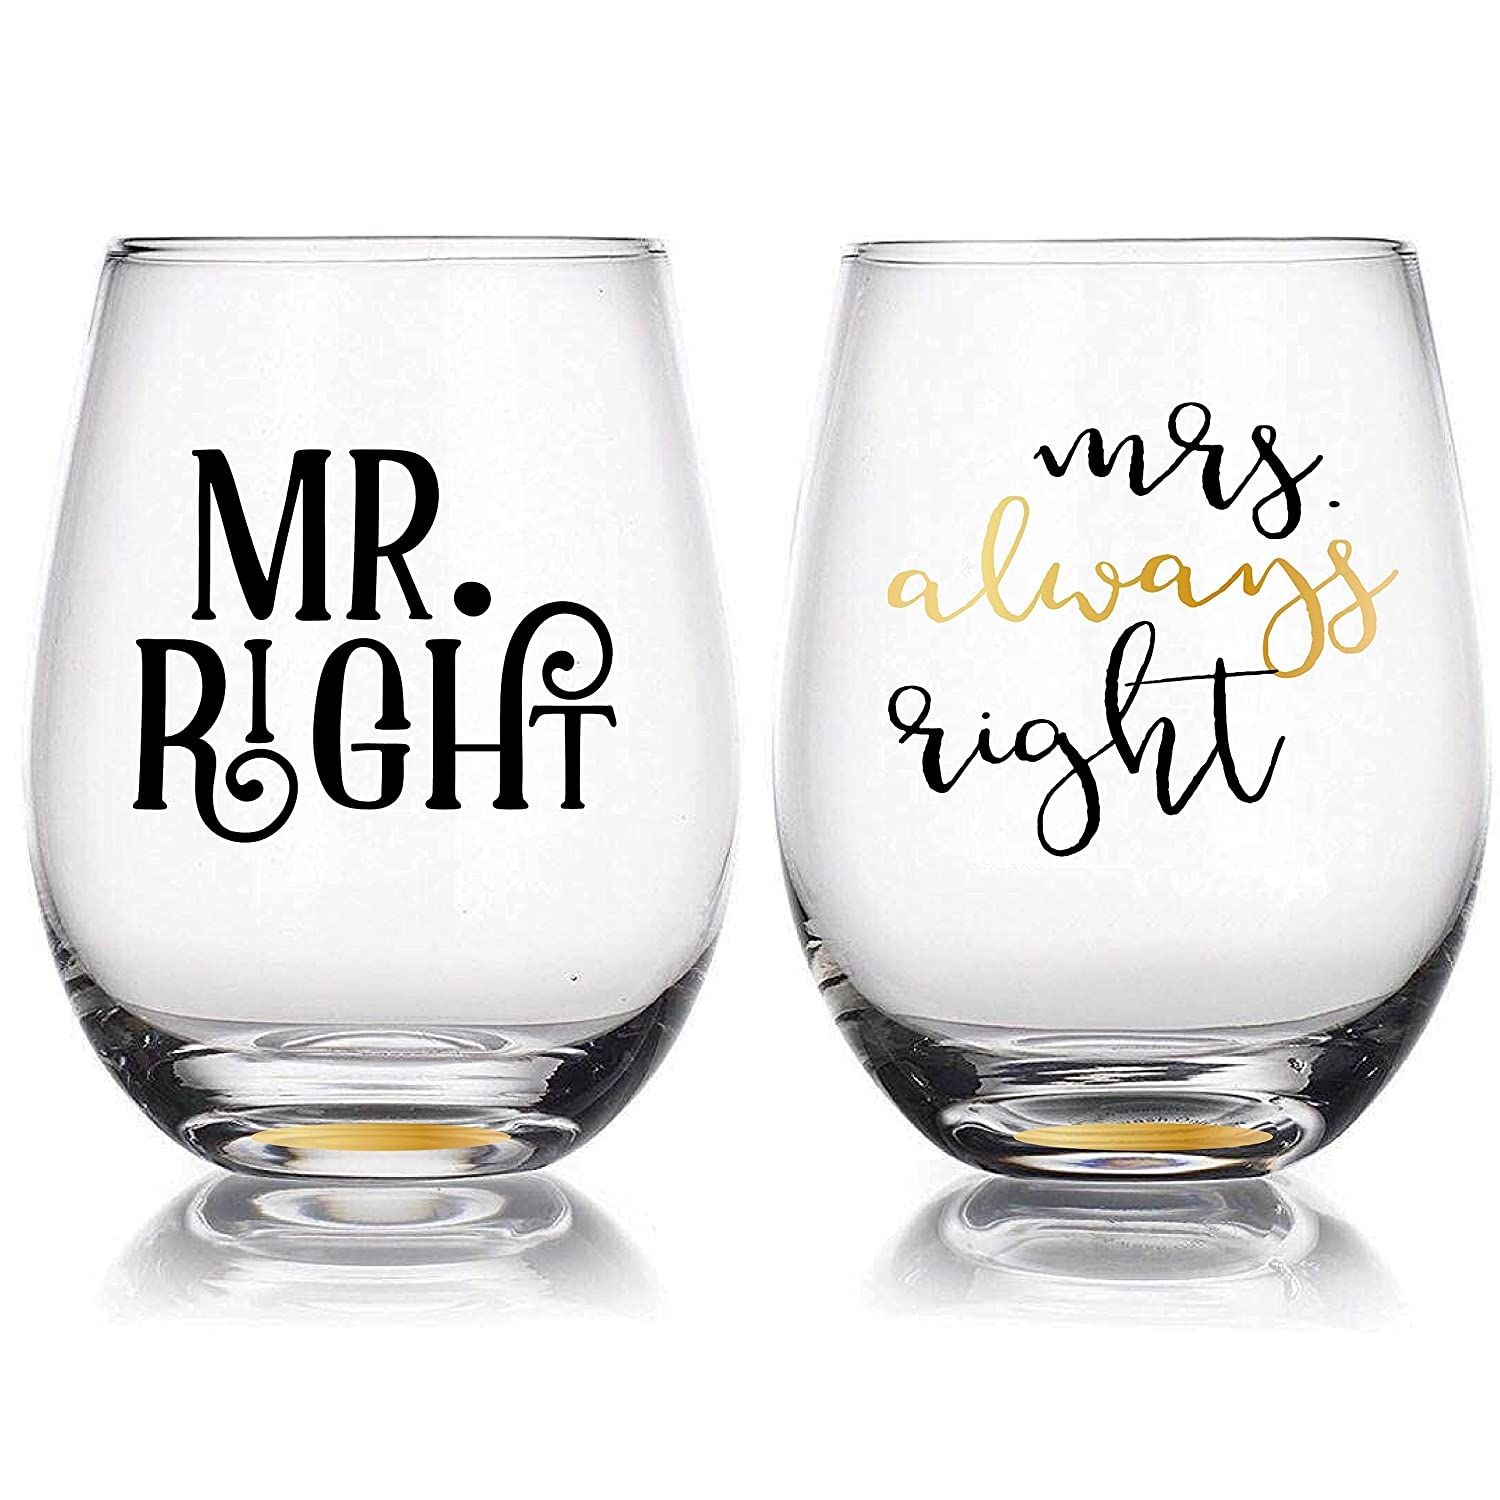 Mr Right & Mrs Always Right - 22oz Stemless Wine Glasses Set of 2, Gift for Wedding Married Couple, for Engagement Gifts CY22OZSLW-11C